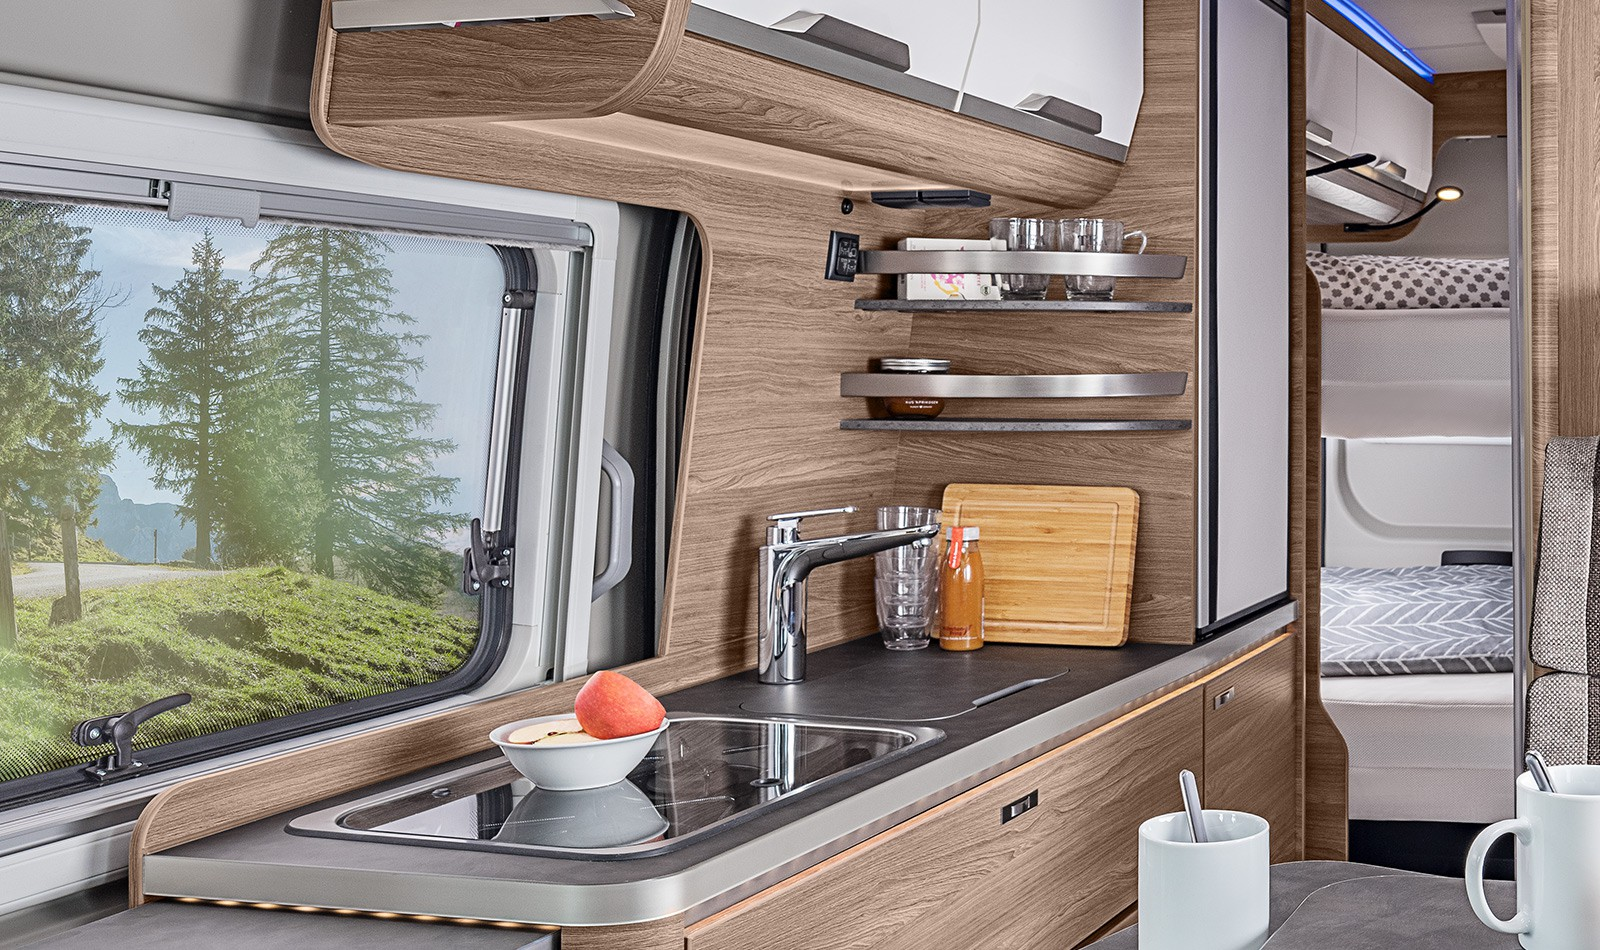 Clever kitchen storage in the knaus best family camper